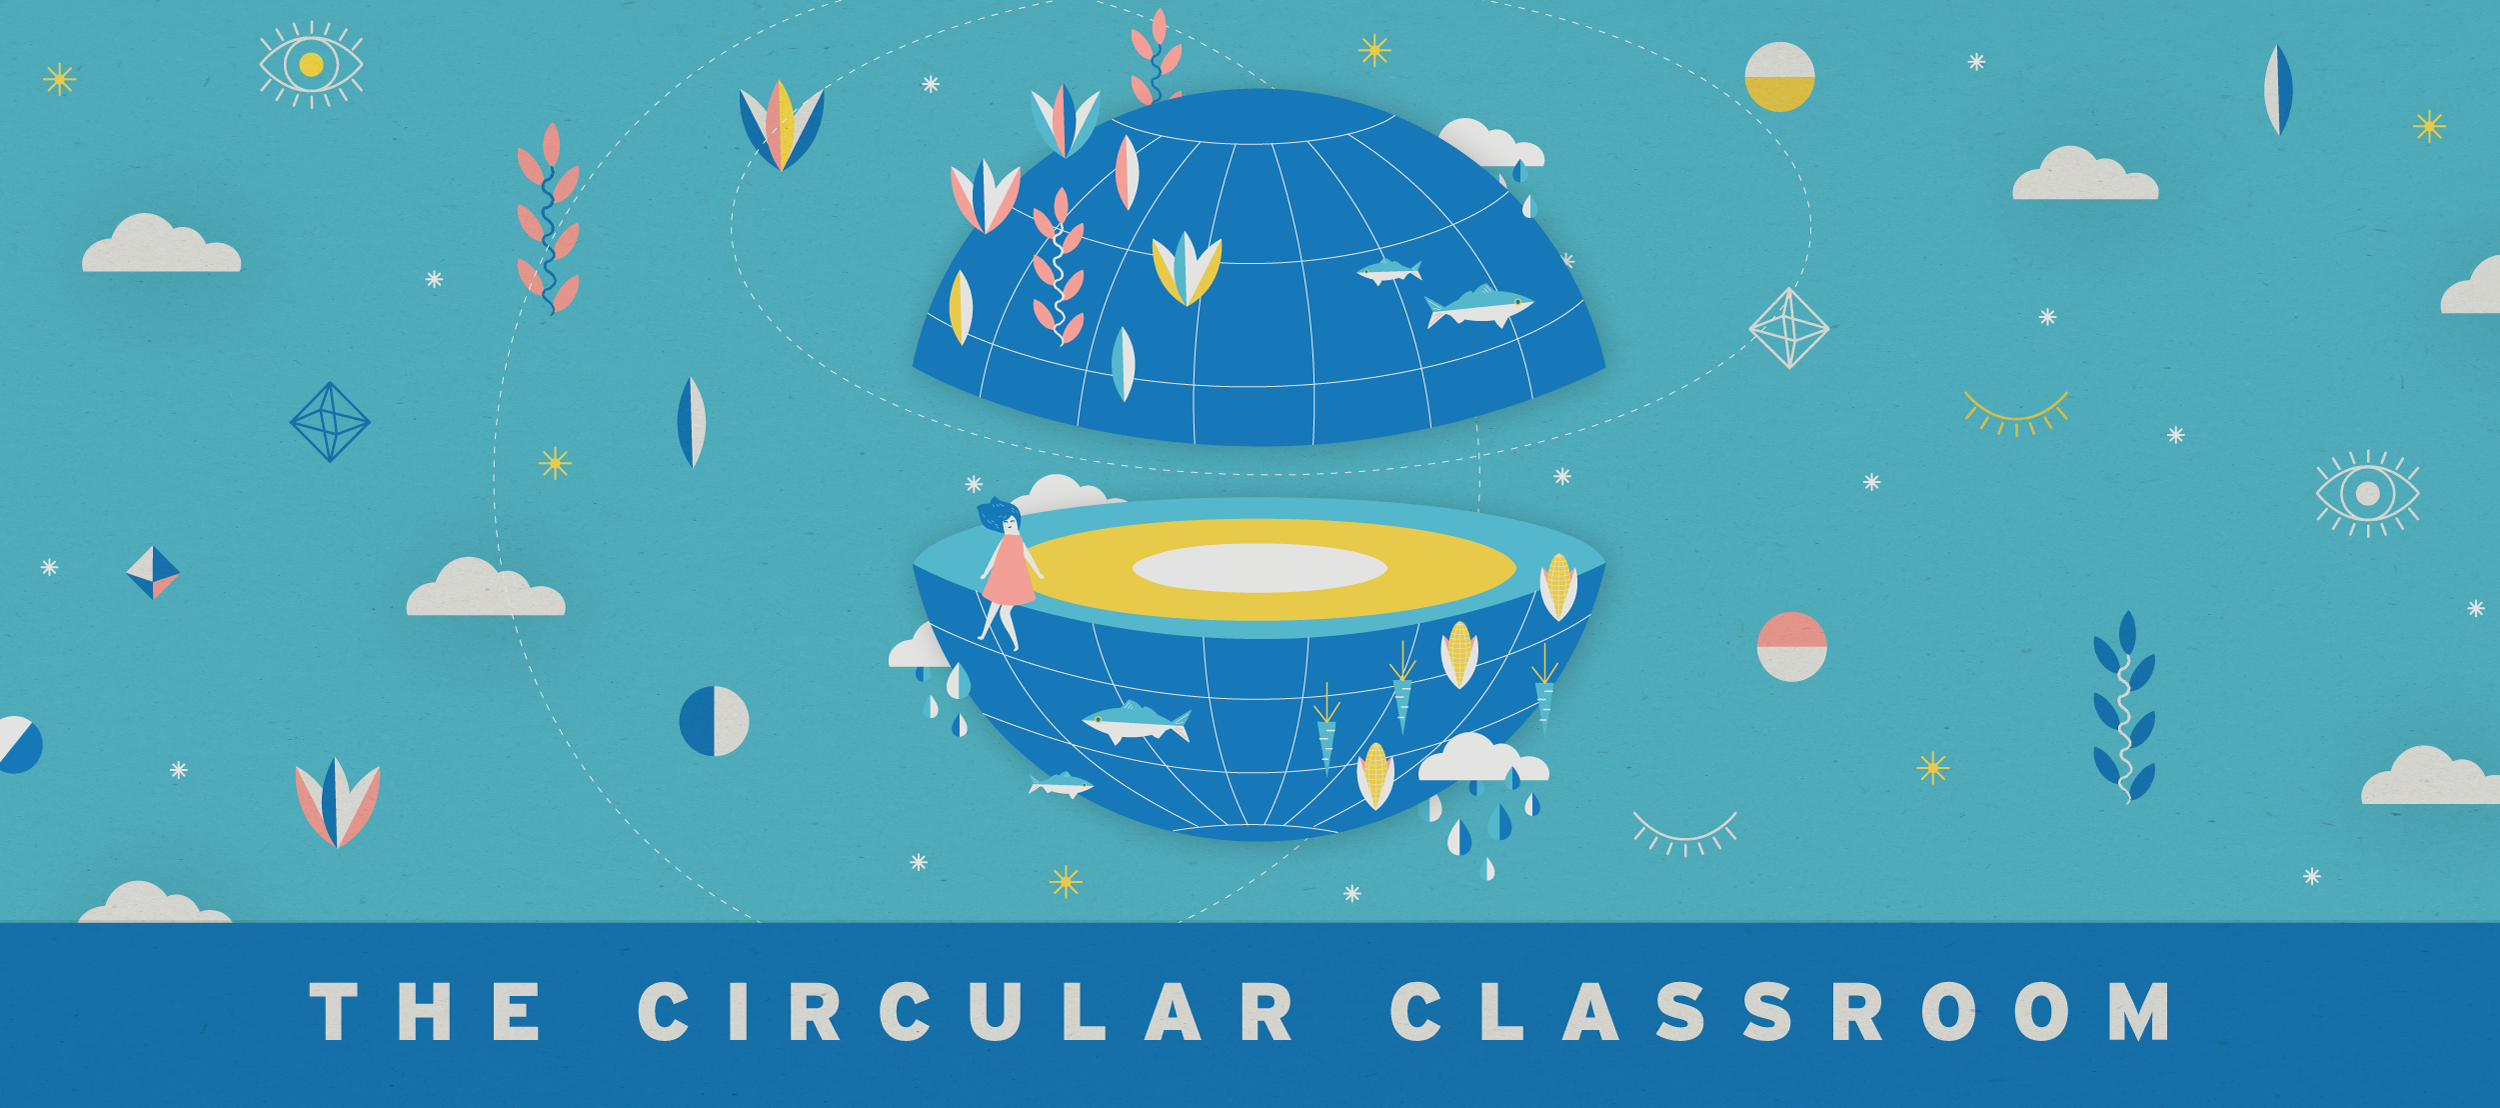 The Circular Classroom: a Free Toolkit for Activating the Circular Economy through Experiential Learning